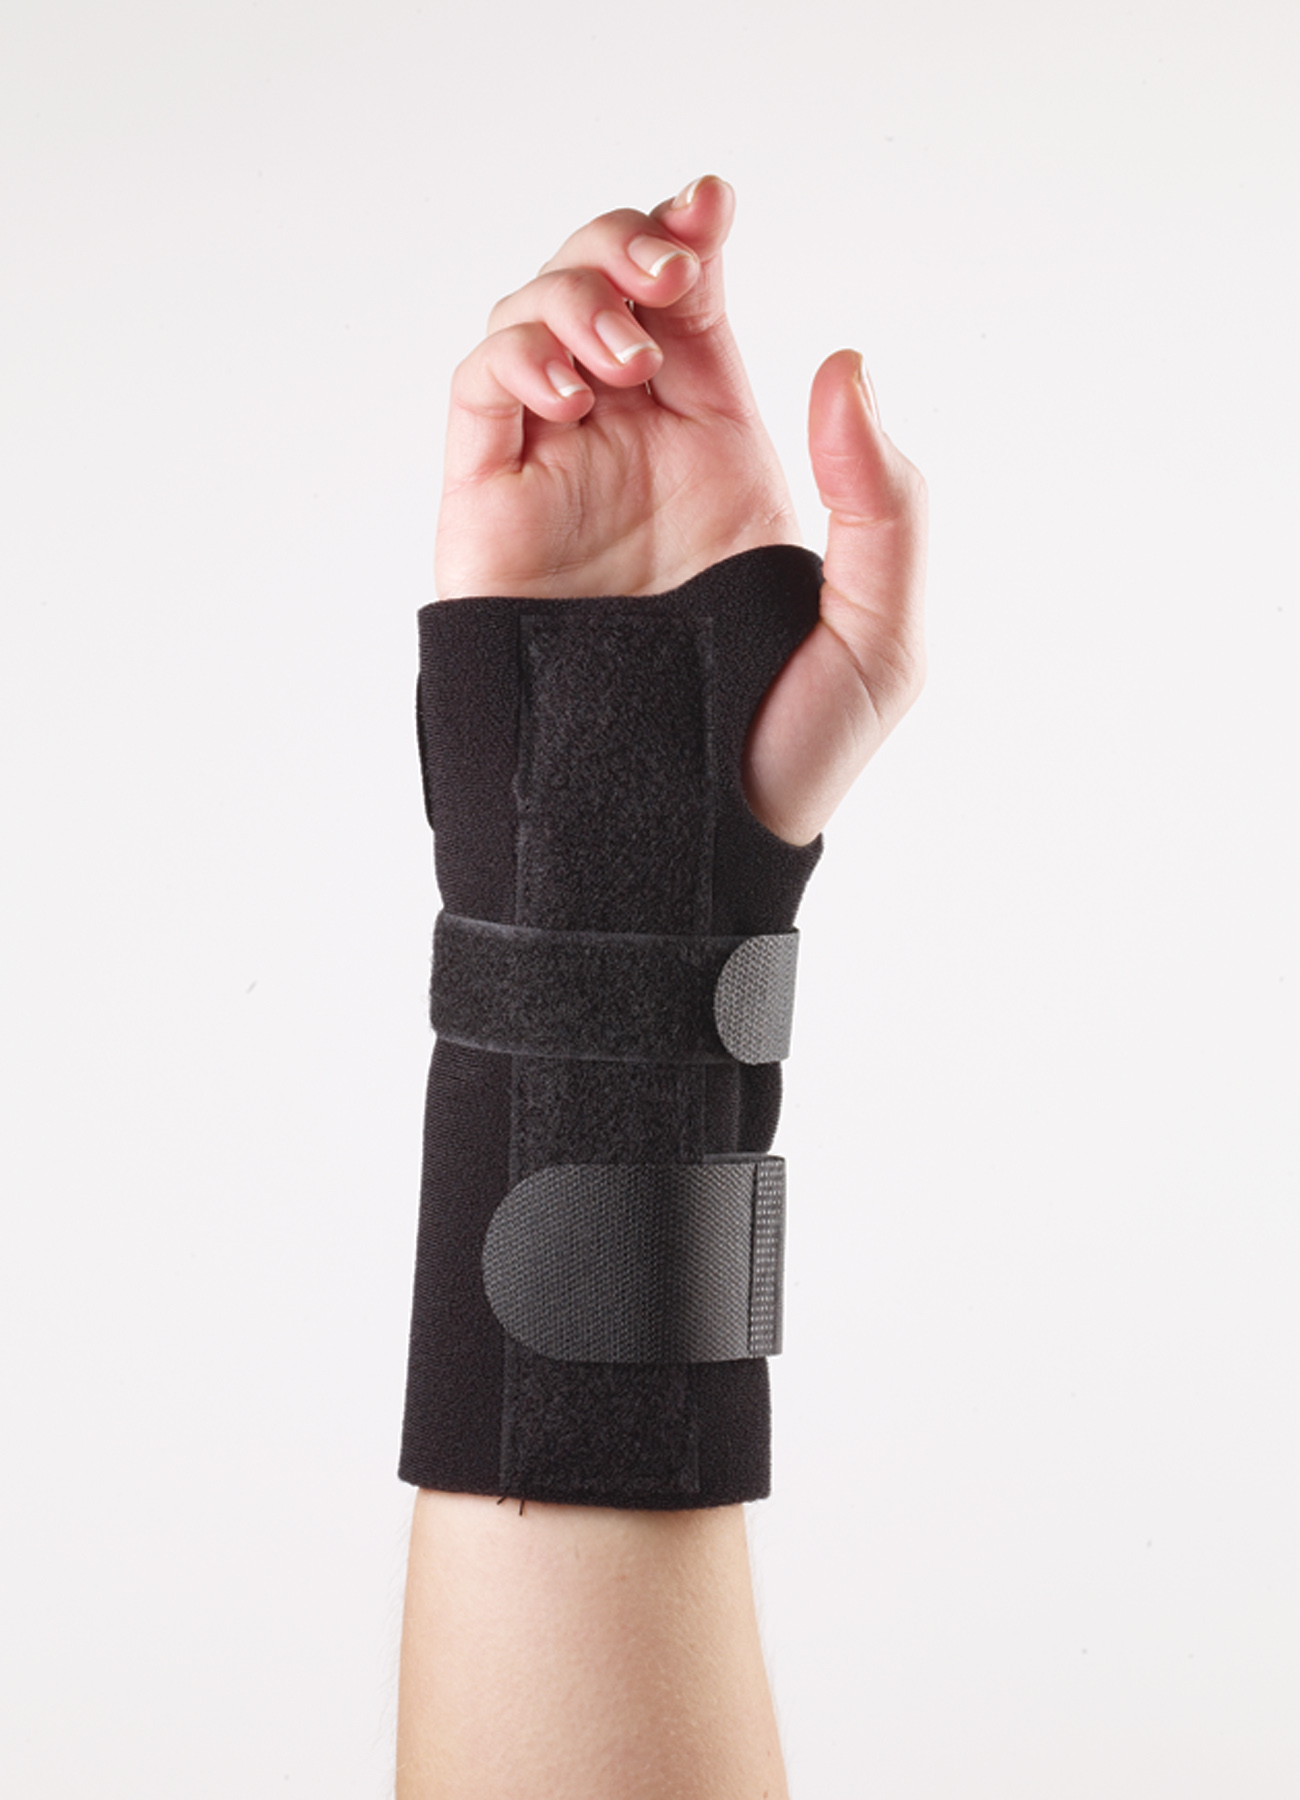 Corflex Inc: Wrist Splints